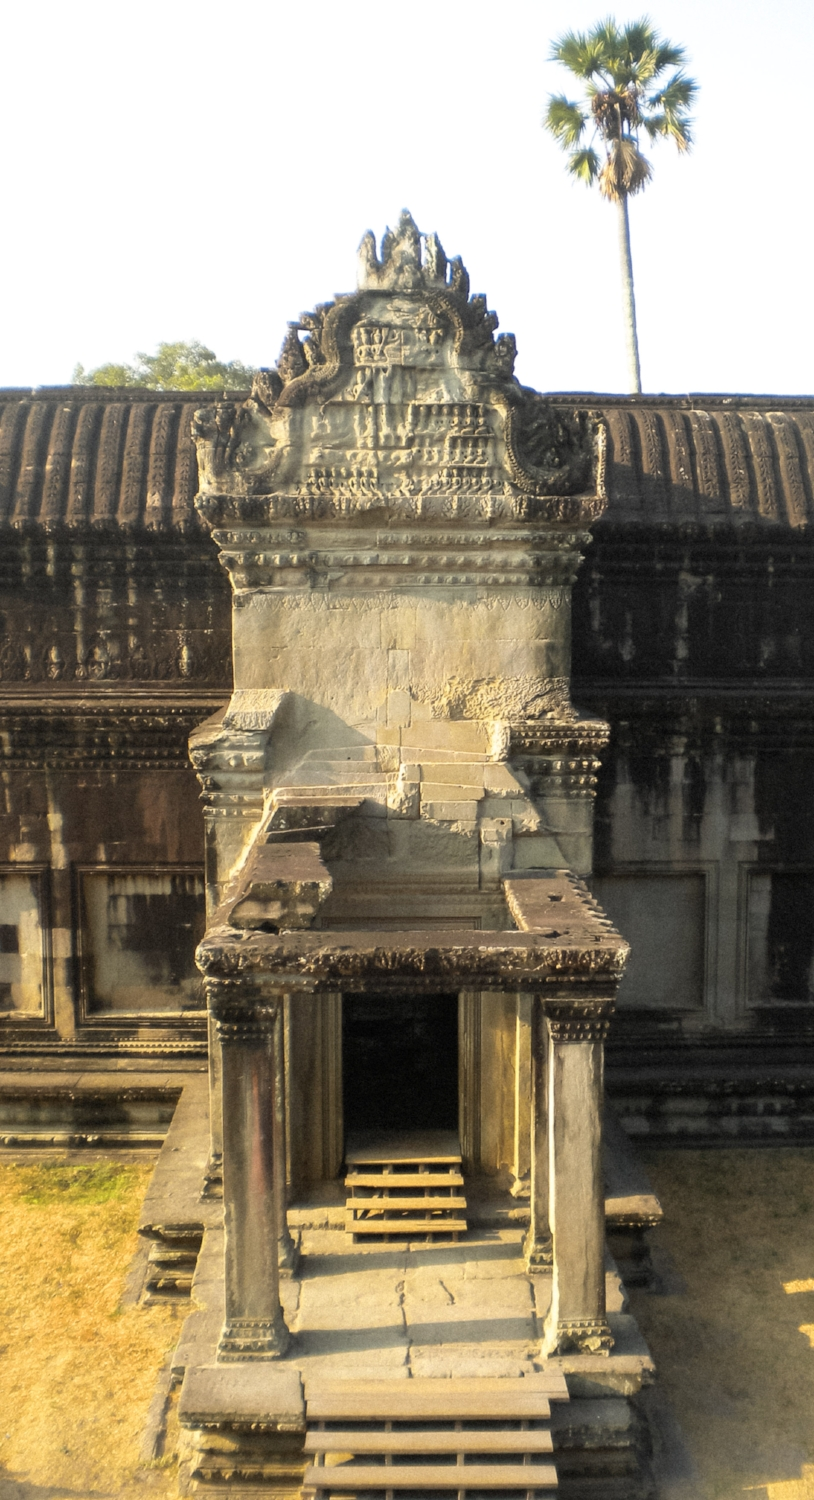 curio.trips.cambodia.siem.reap.angkor.wat.temple.steps.jpg